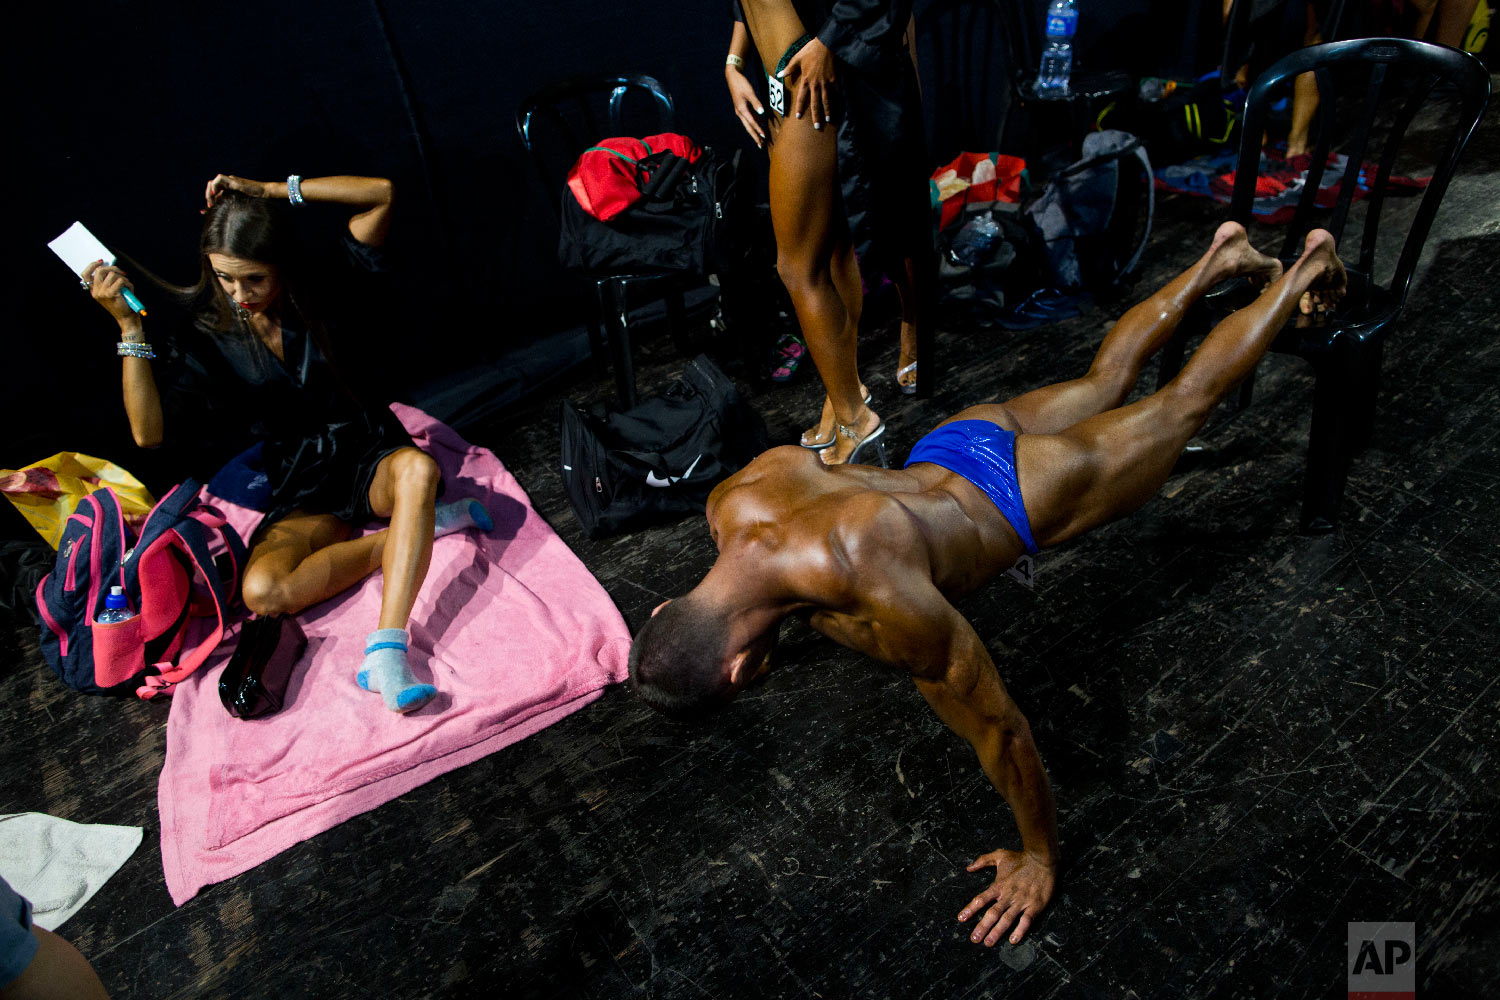 Contestants get ready backstage during the National Amateur Body Builders' Association competition in Tel Aviv, Israel on Oct. 18, 2018. (AP Photo/Oded Balilty)